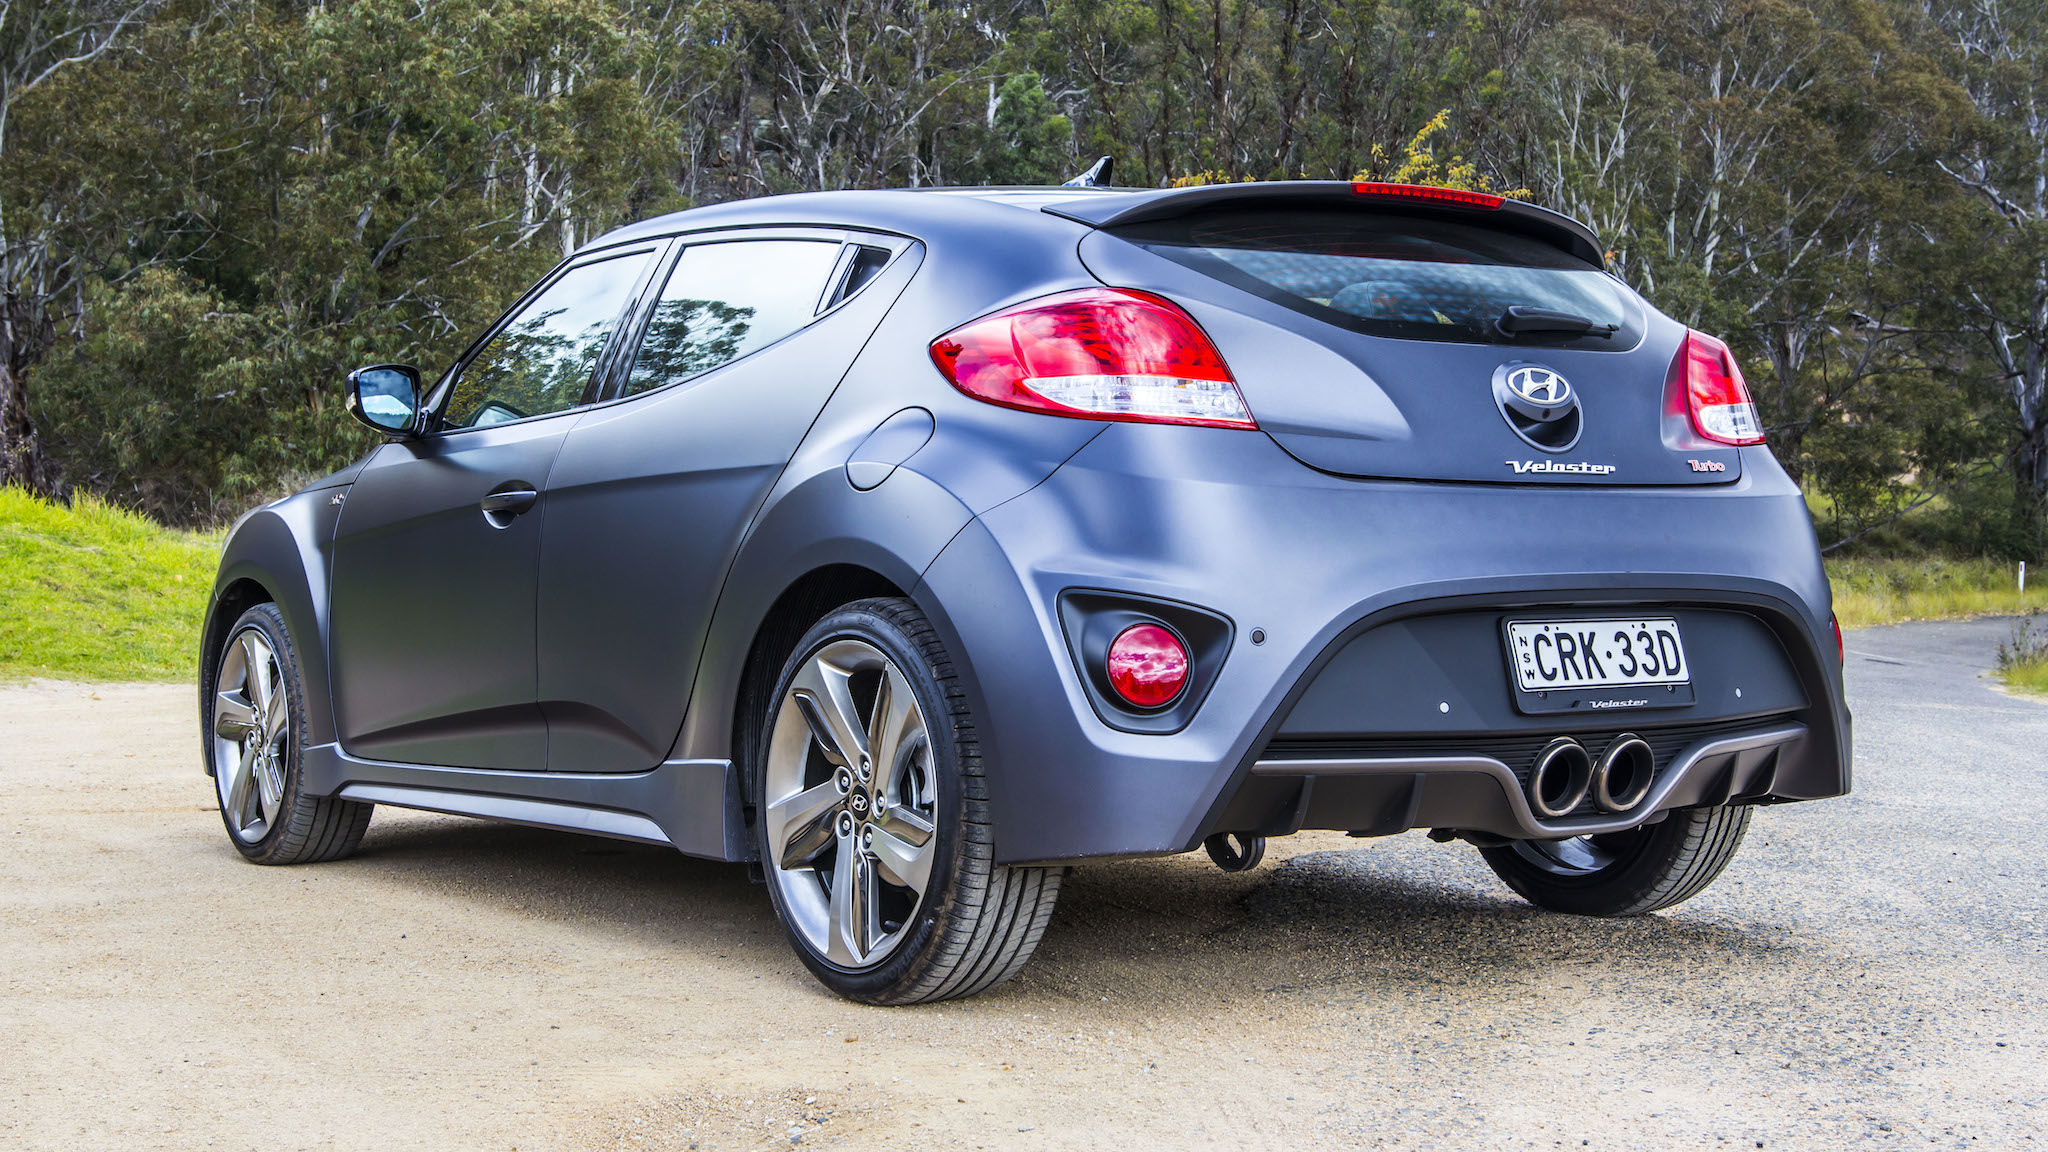 Owner Ford Com >> Sporty hatch comparison : Kia Pro_cee'd GT v Hyundai Veloster SR Turbo v Renault Megane RS265 ...